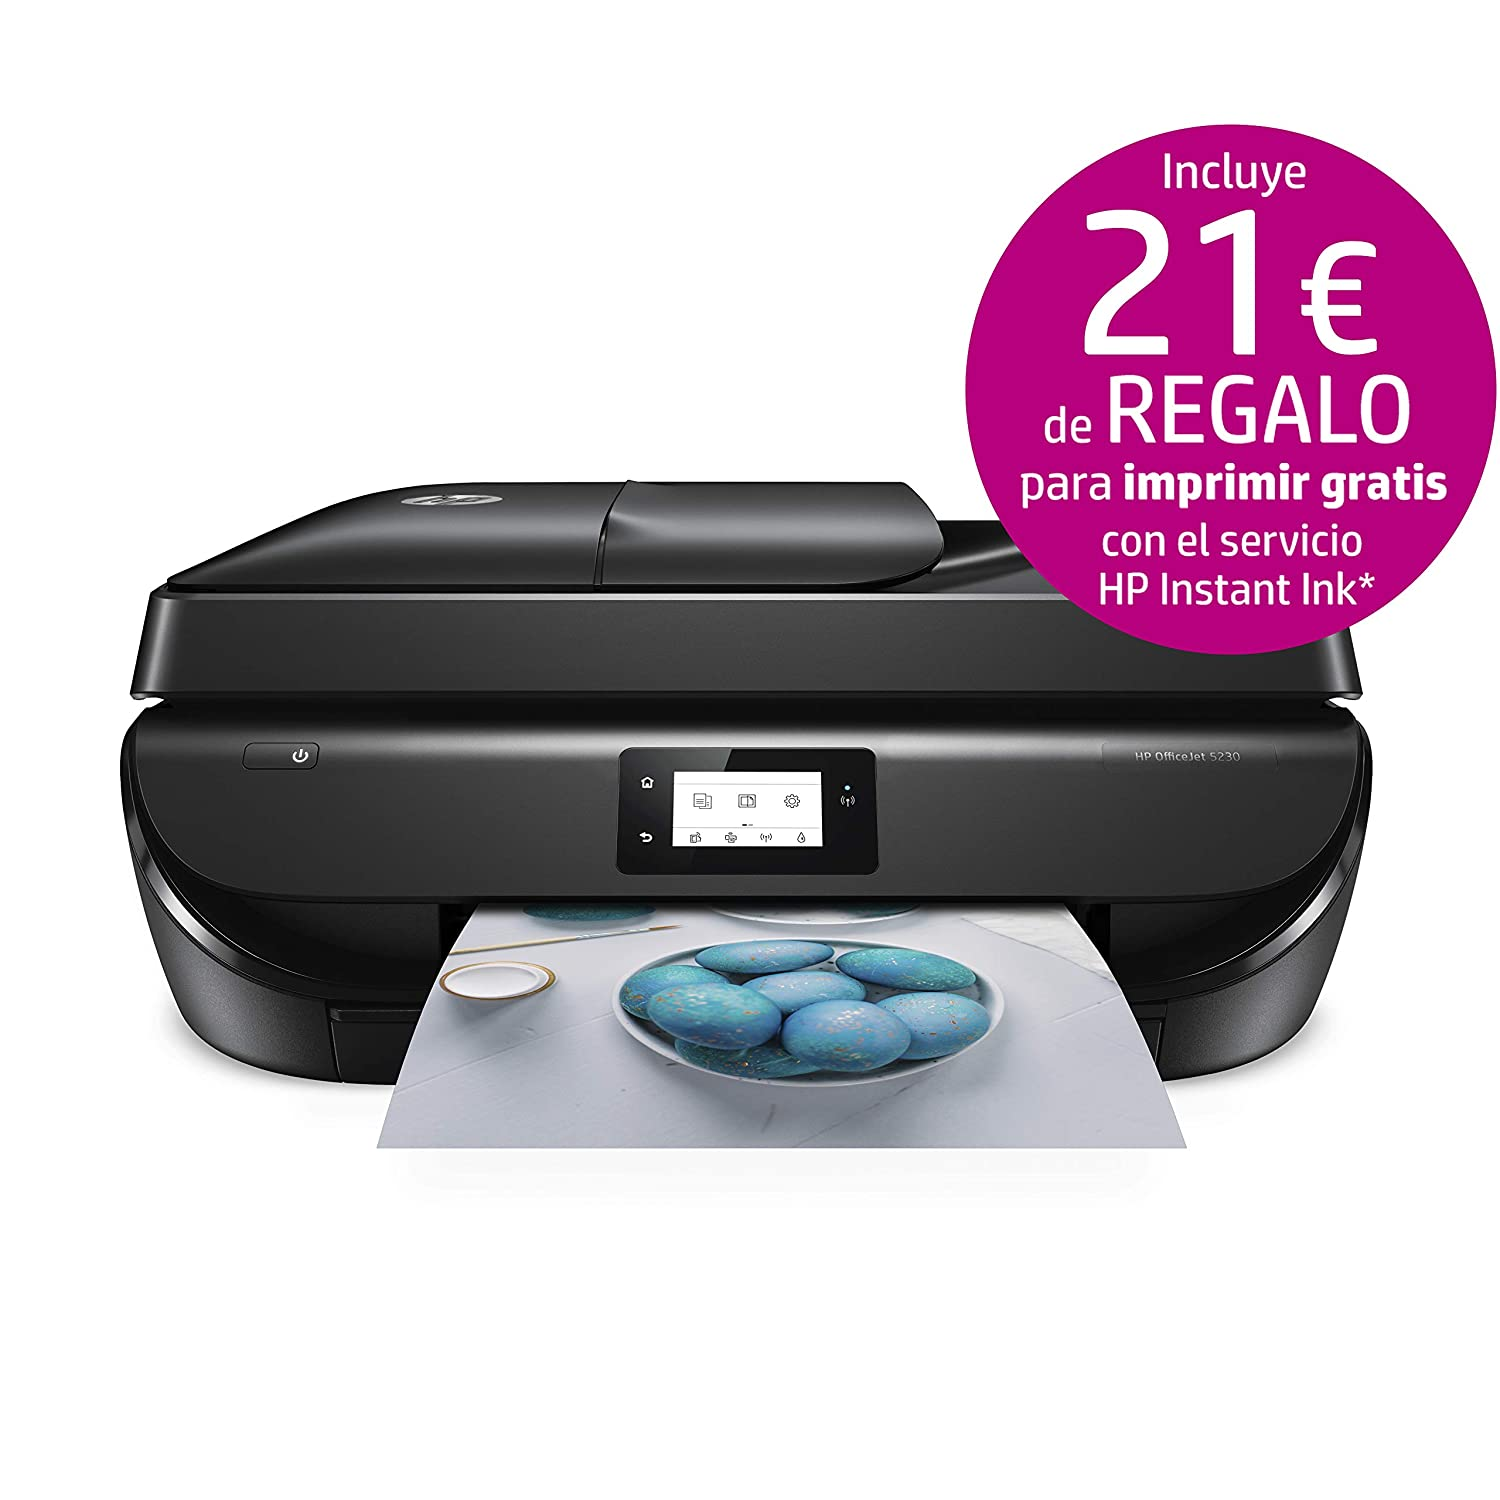 HP Officejet 5230 – Impresora multifunción inalámbrica (tinta, Wi-Fi, copiar, escanear, impresión a doble cara, 1200 x 1200 ppp, 10 ppm), color negro